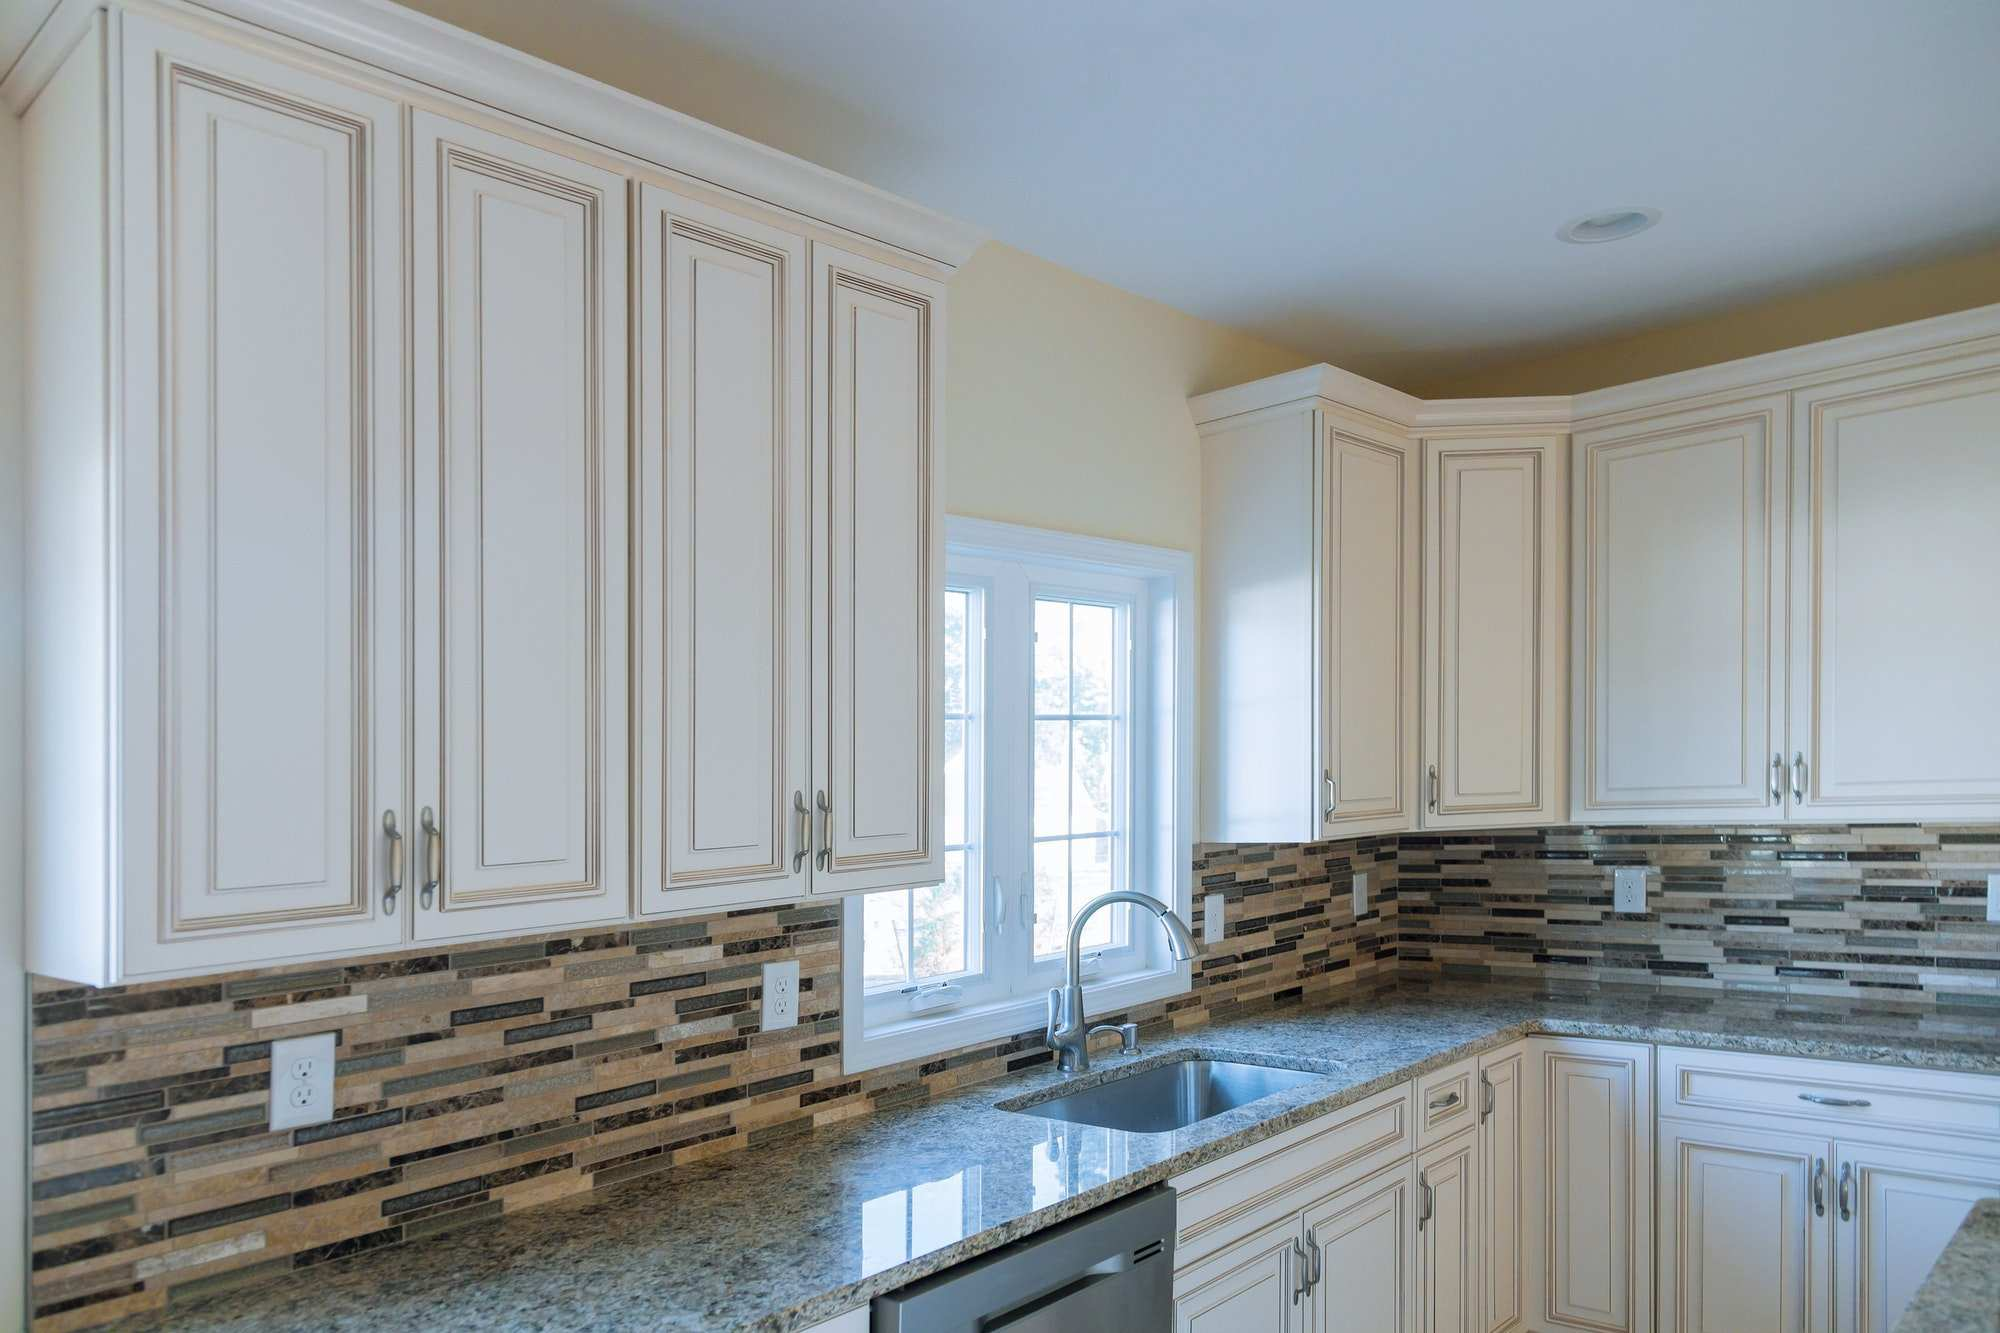 Columbus, Ohio Kitchen remodeling company near me to design a beautiful kitchen furniture the drawer in cabinet.